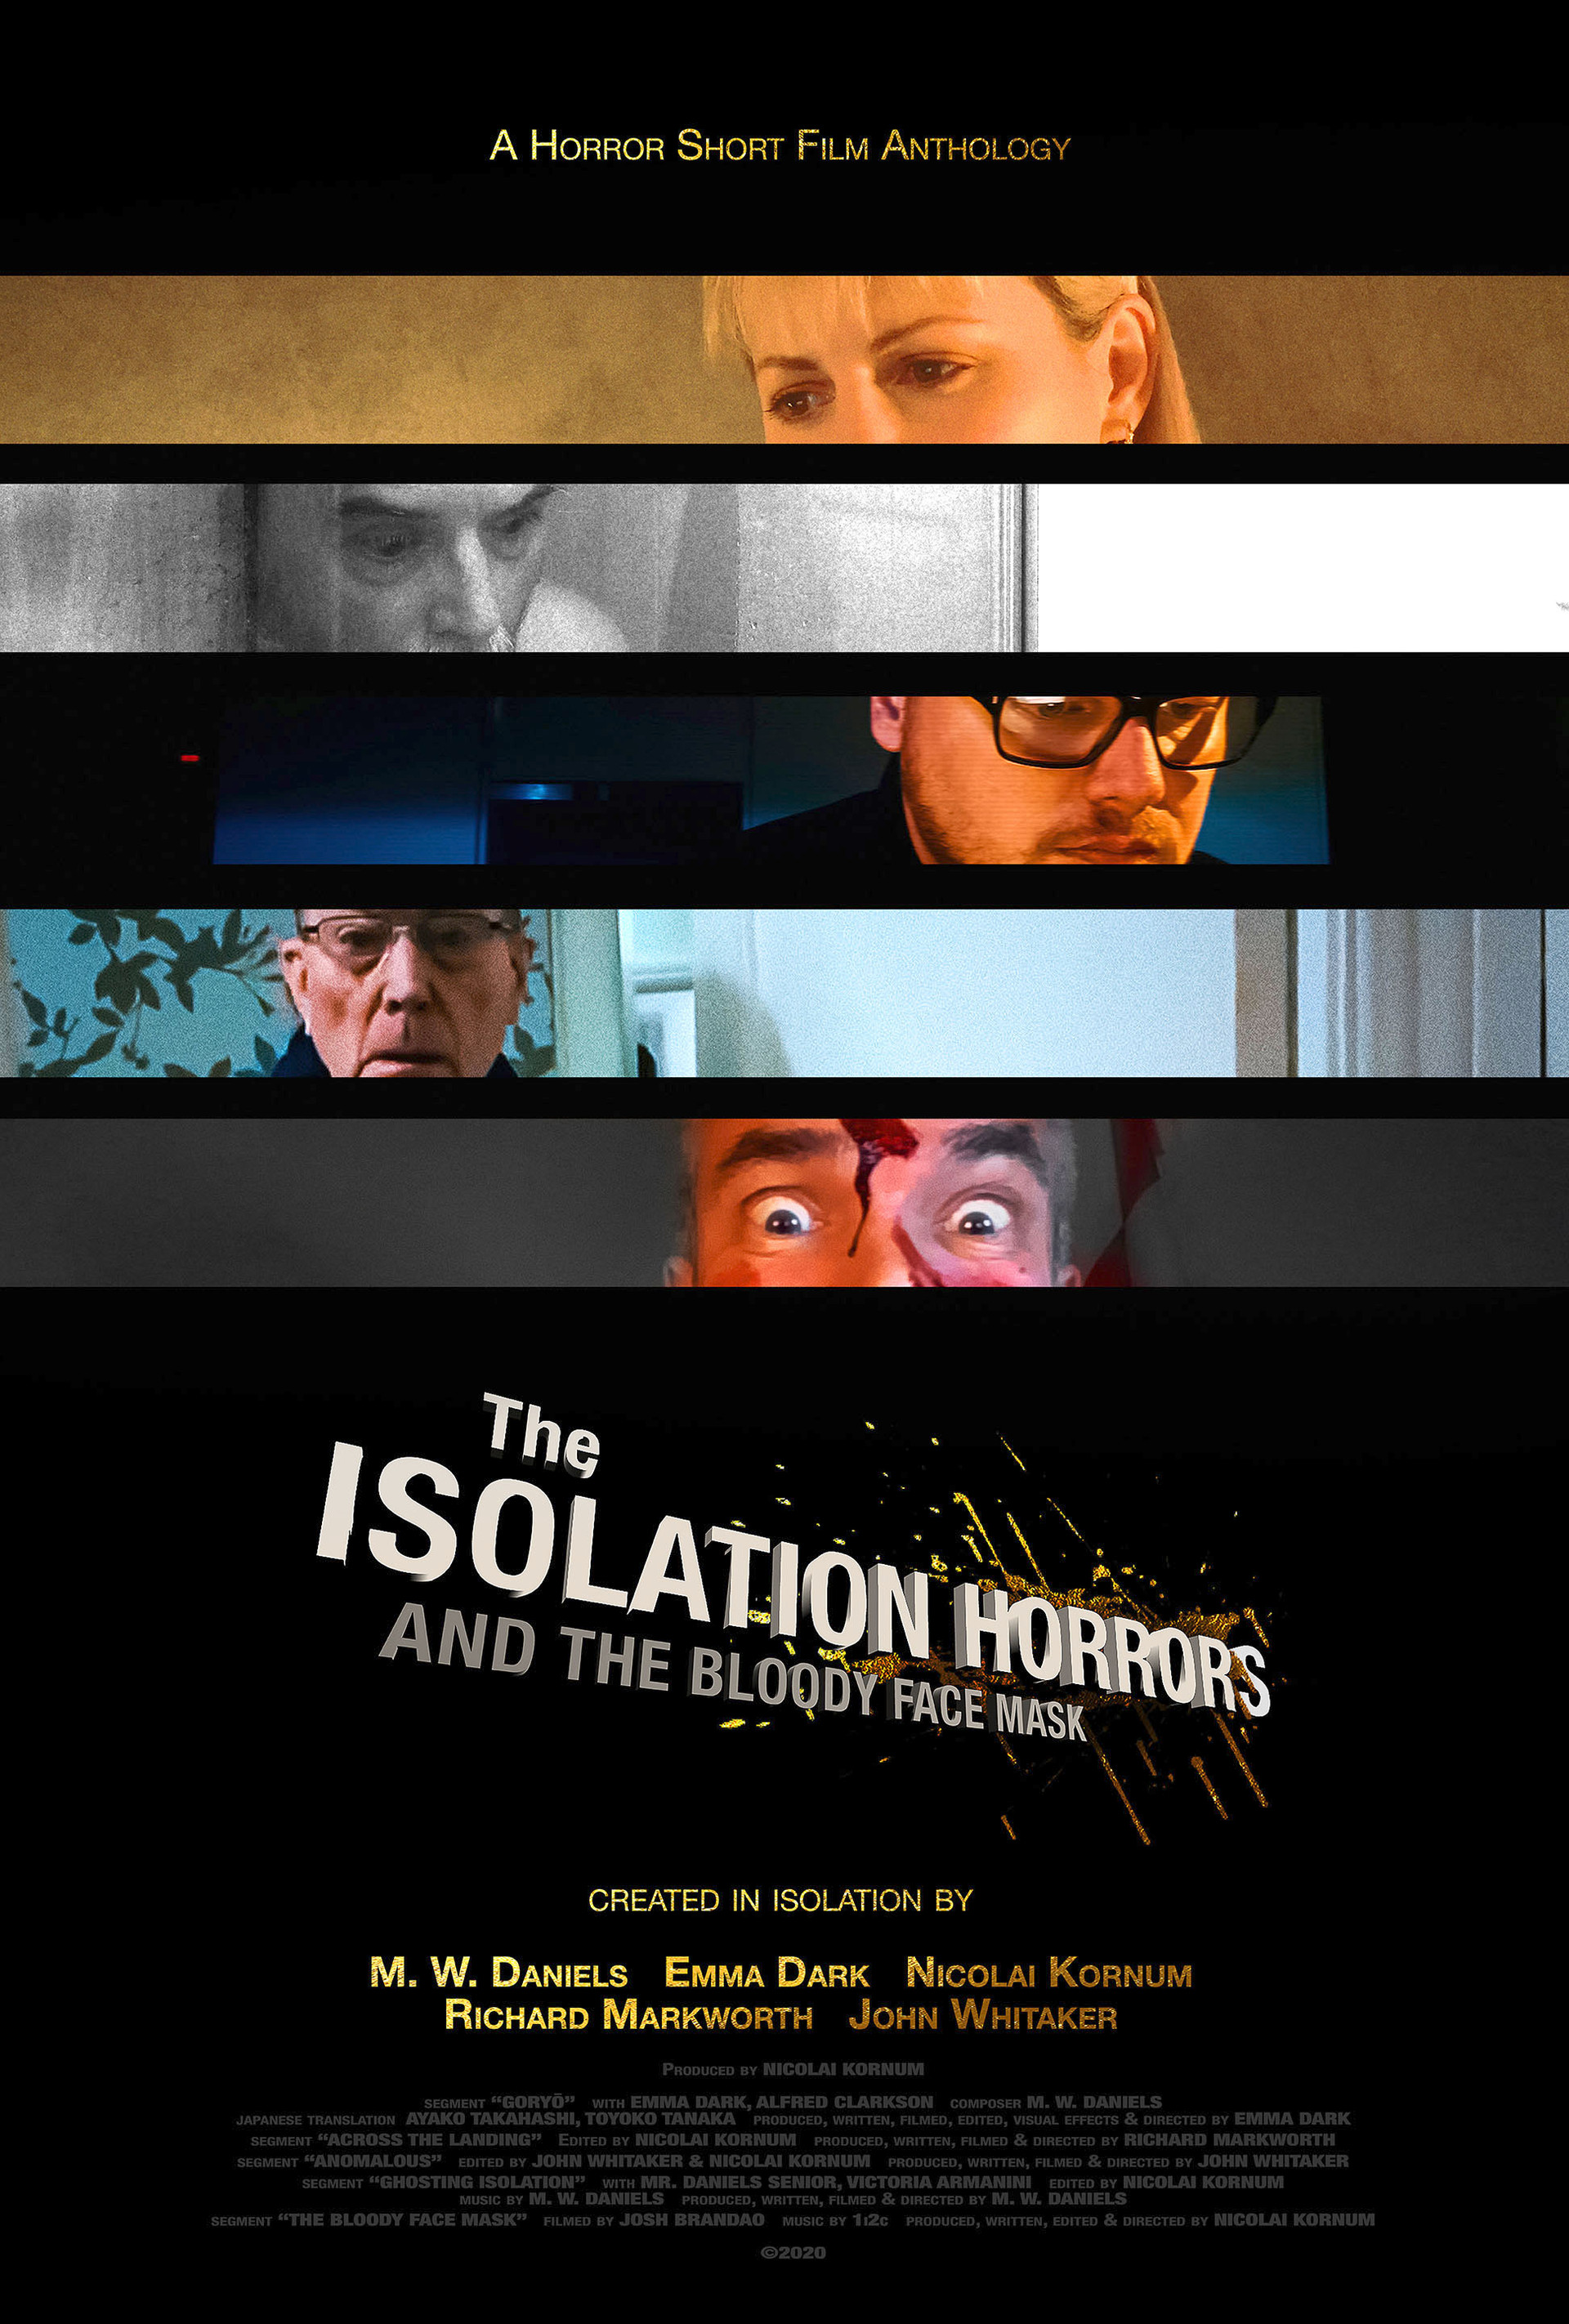 THE ISOLATION HORRORS Poster 1 small.jpg